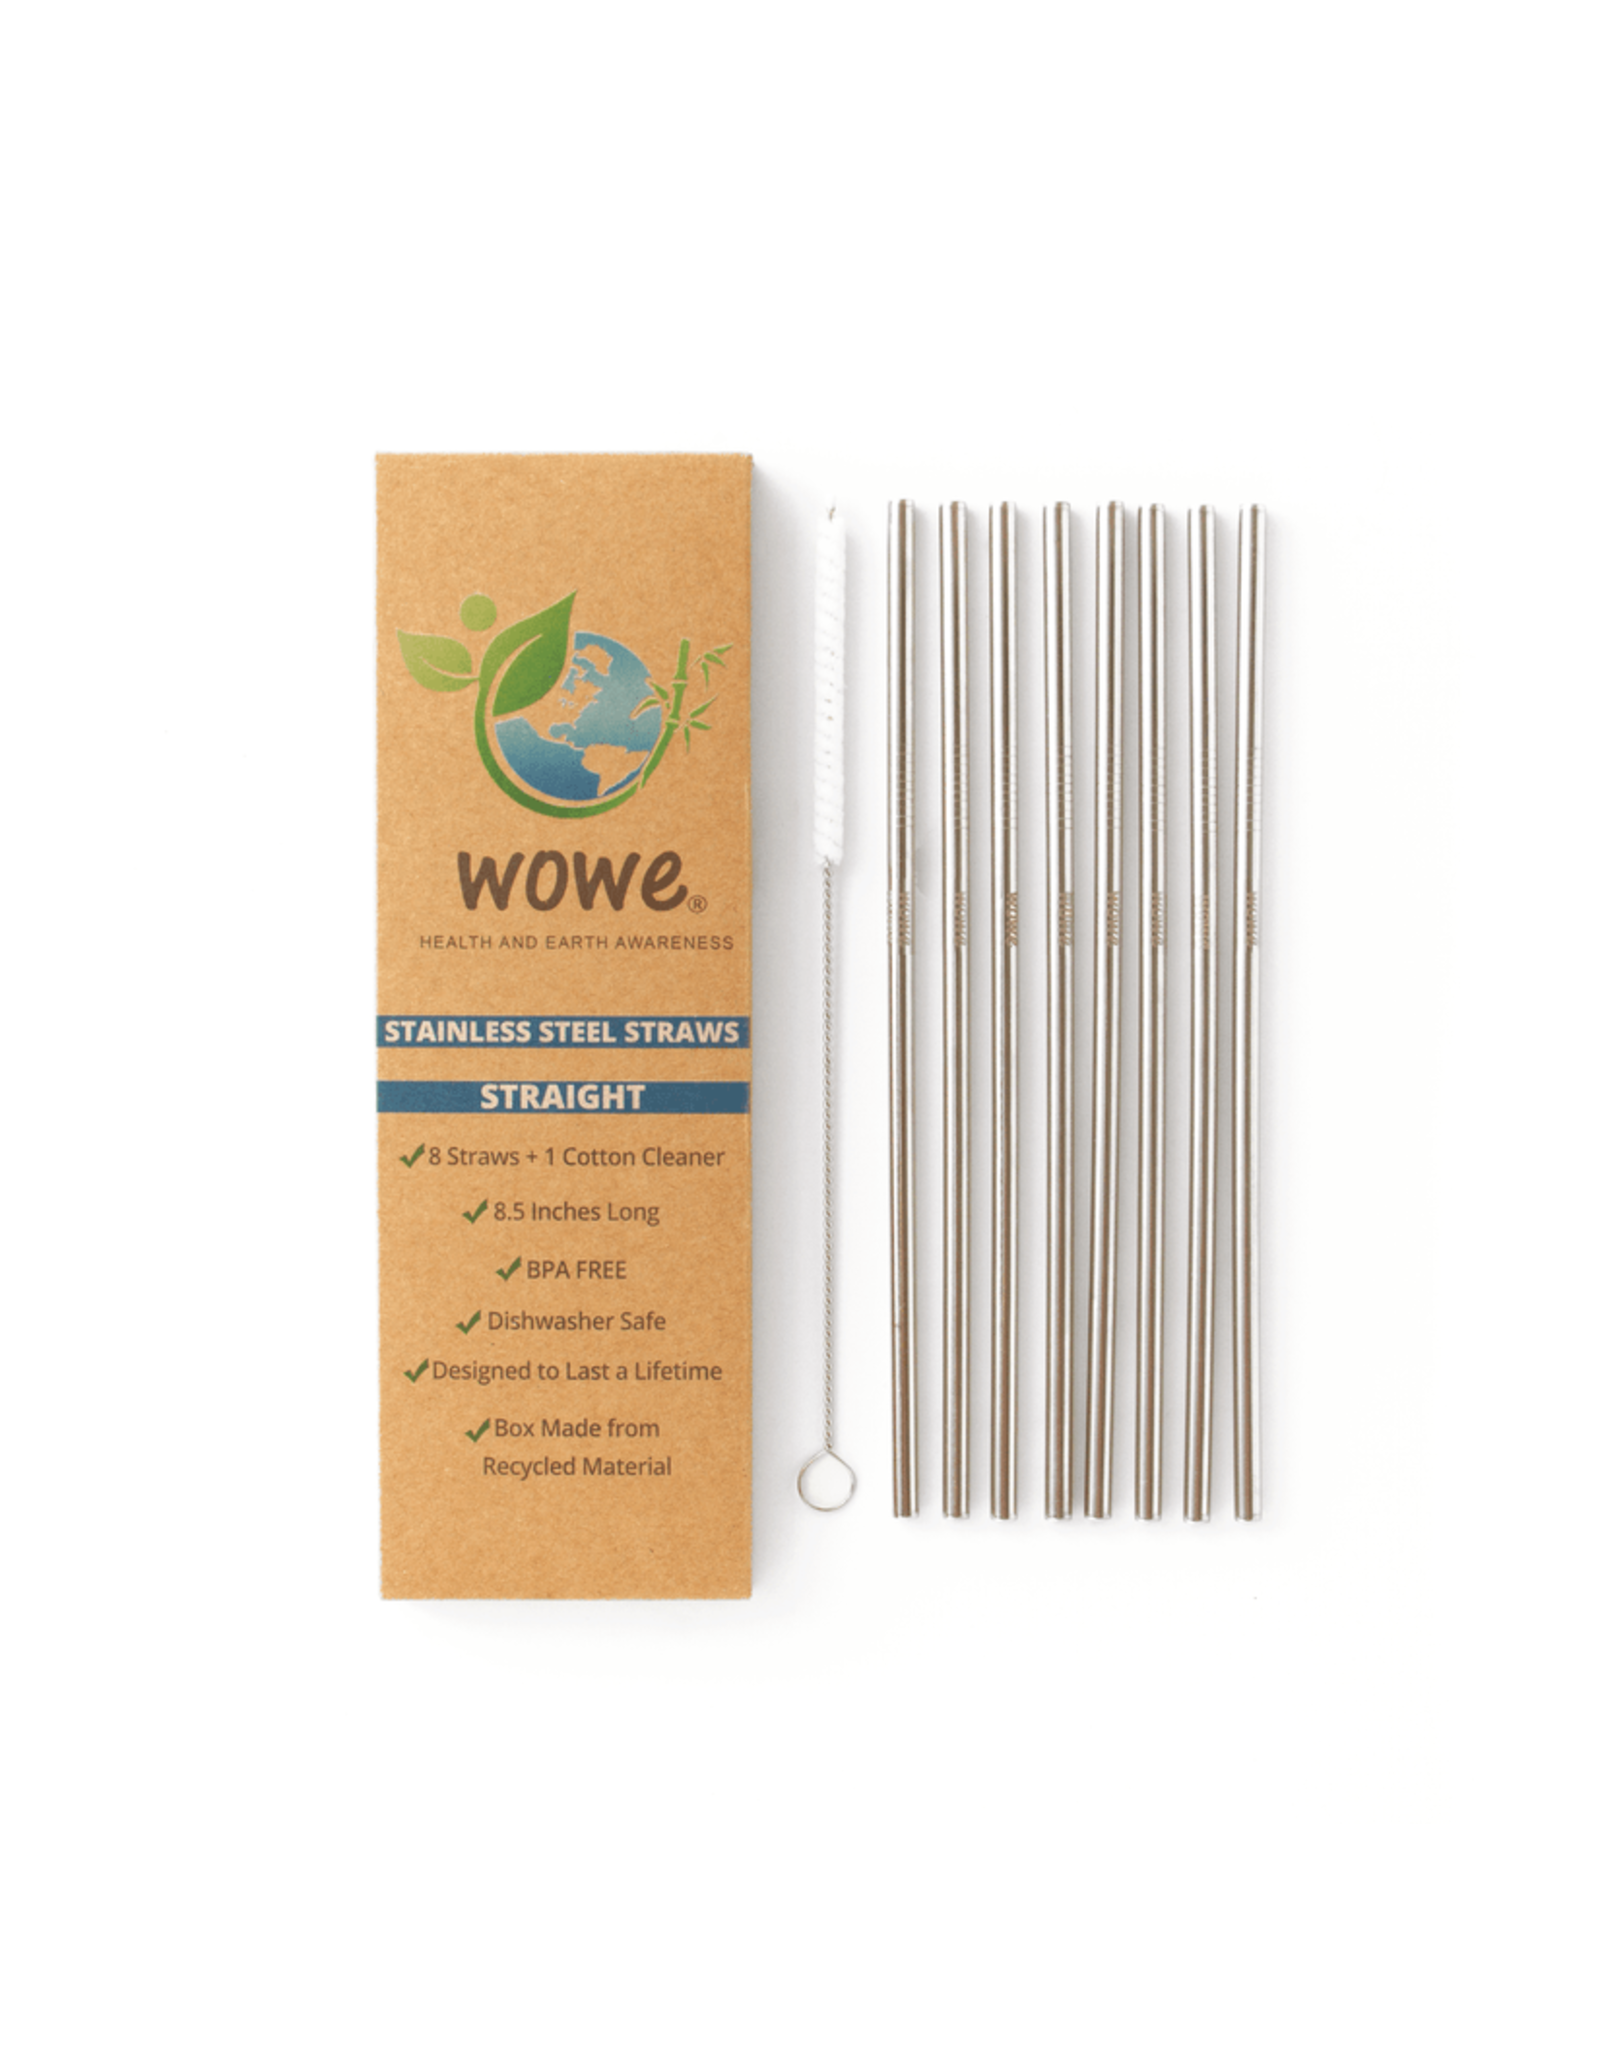 Stainless Steel Straws - Pack of 8